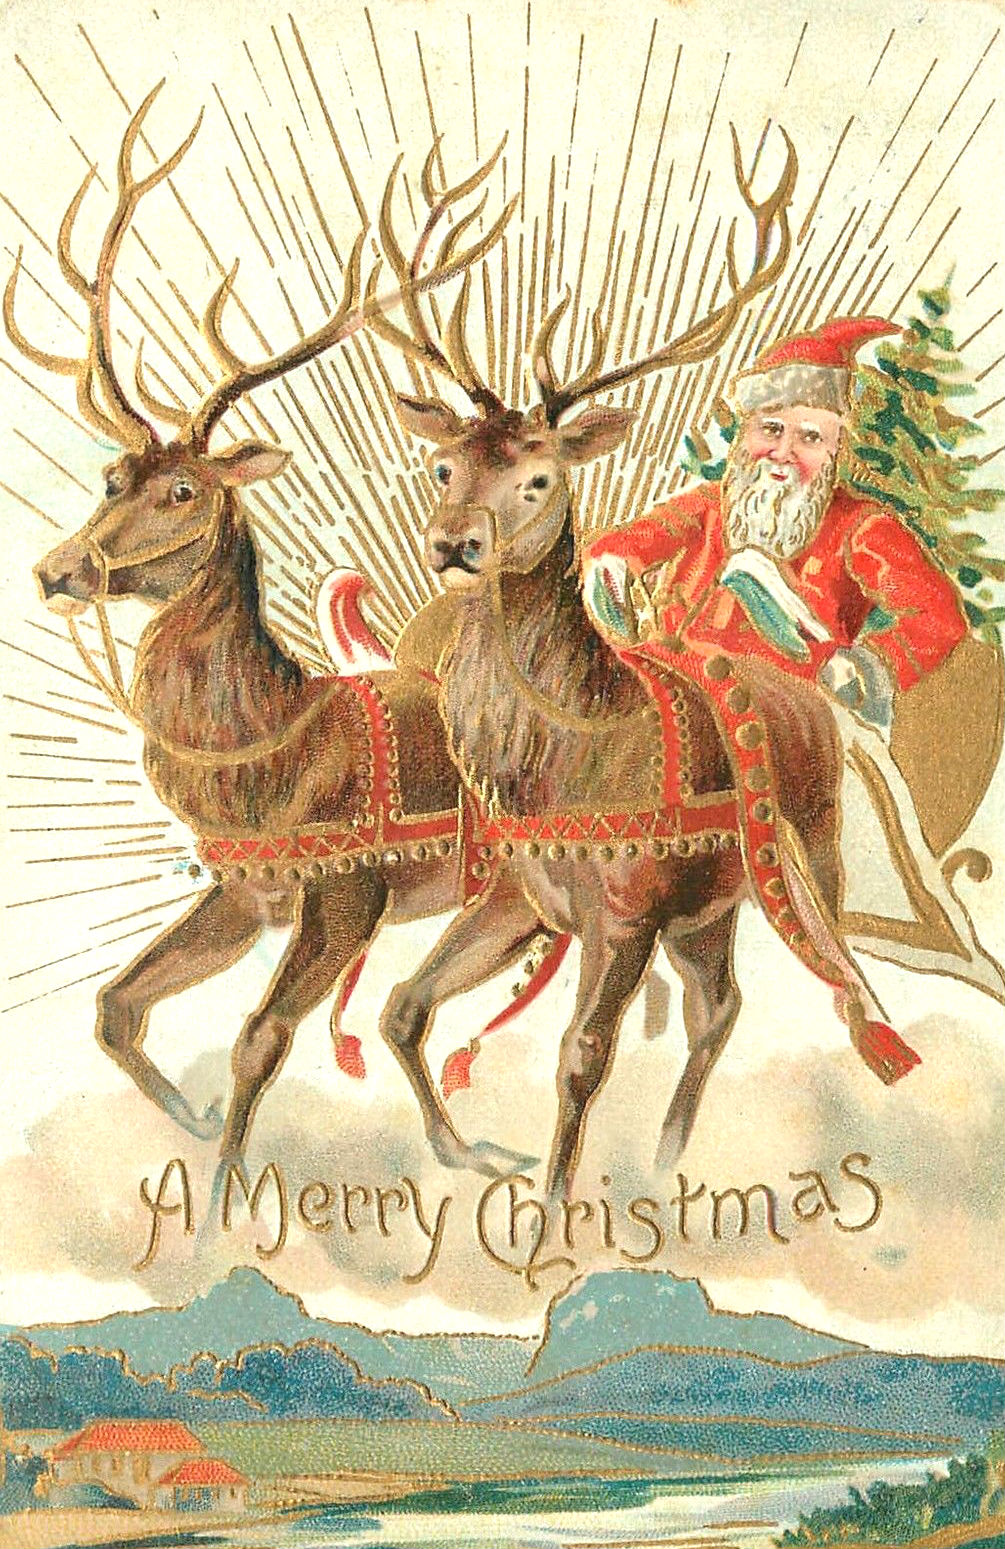 Christmas postcard of Santa Claus and his reindeer. Published by Souvenir Post Card Company, New York. December 1907 postmark.